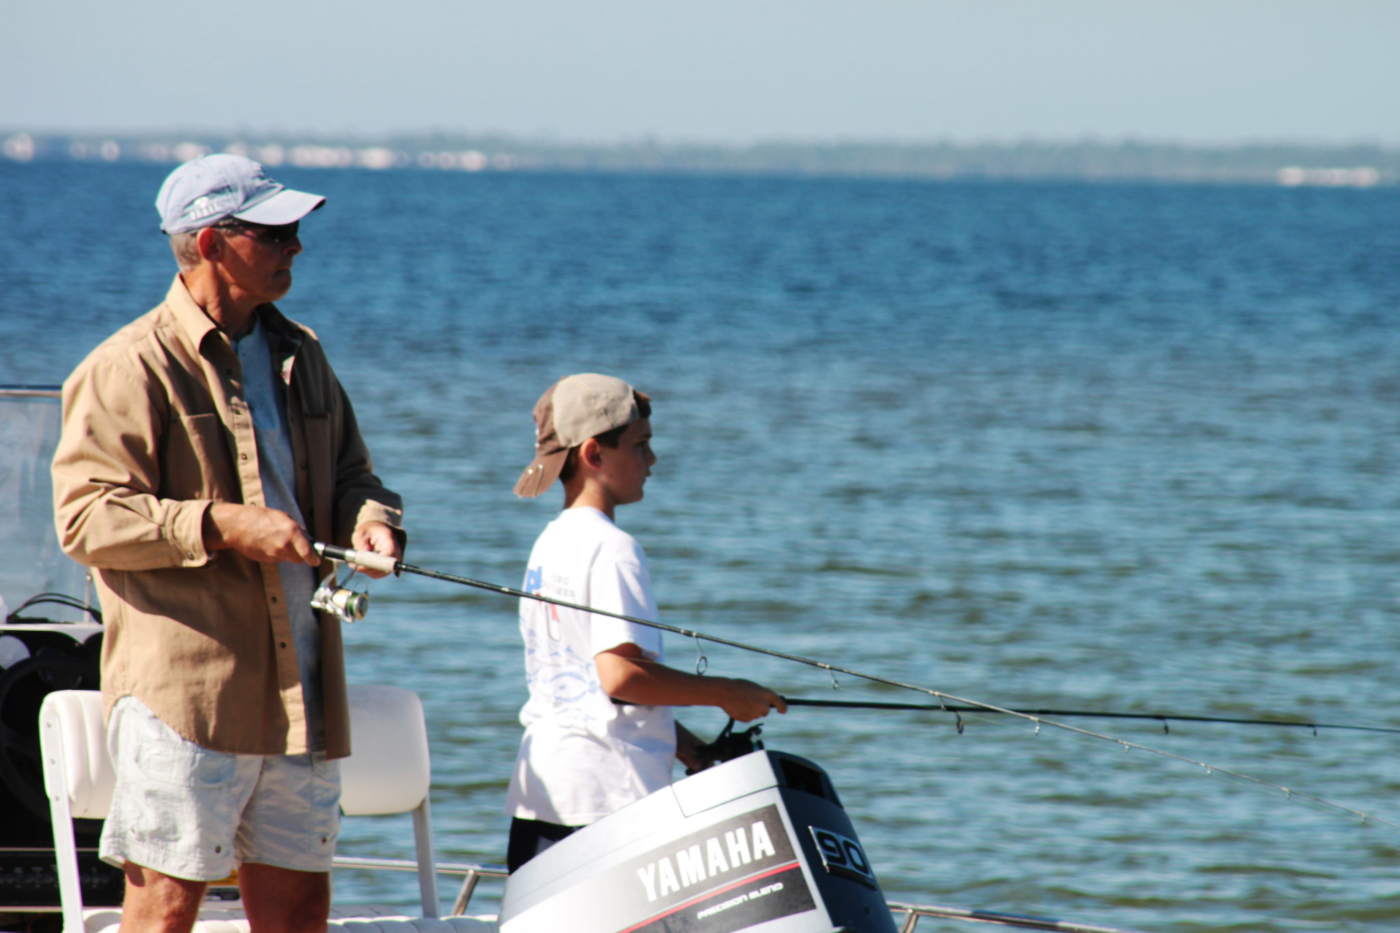 Image of father and son fishing.